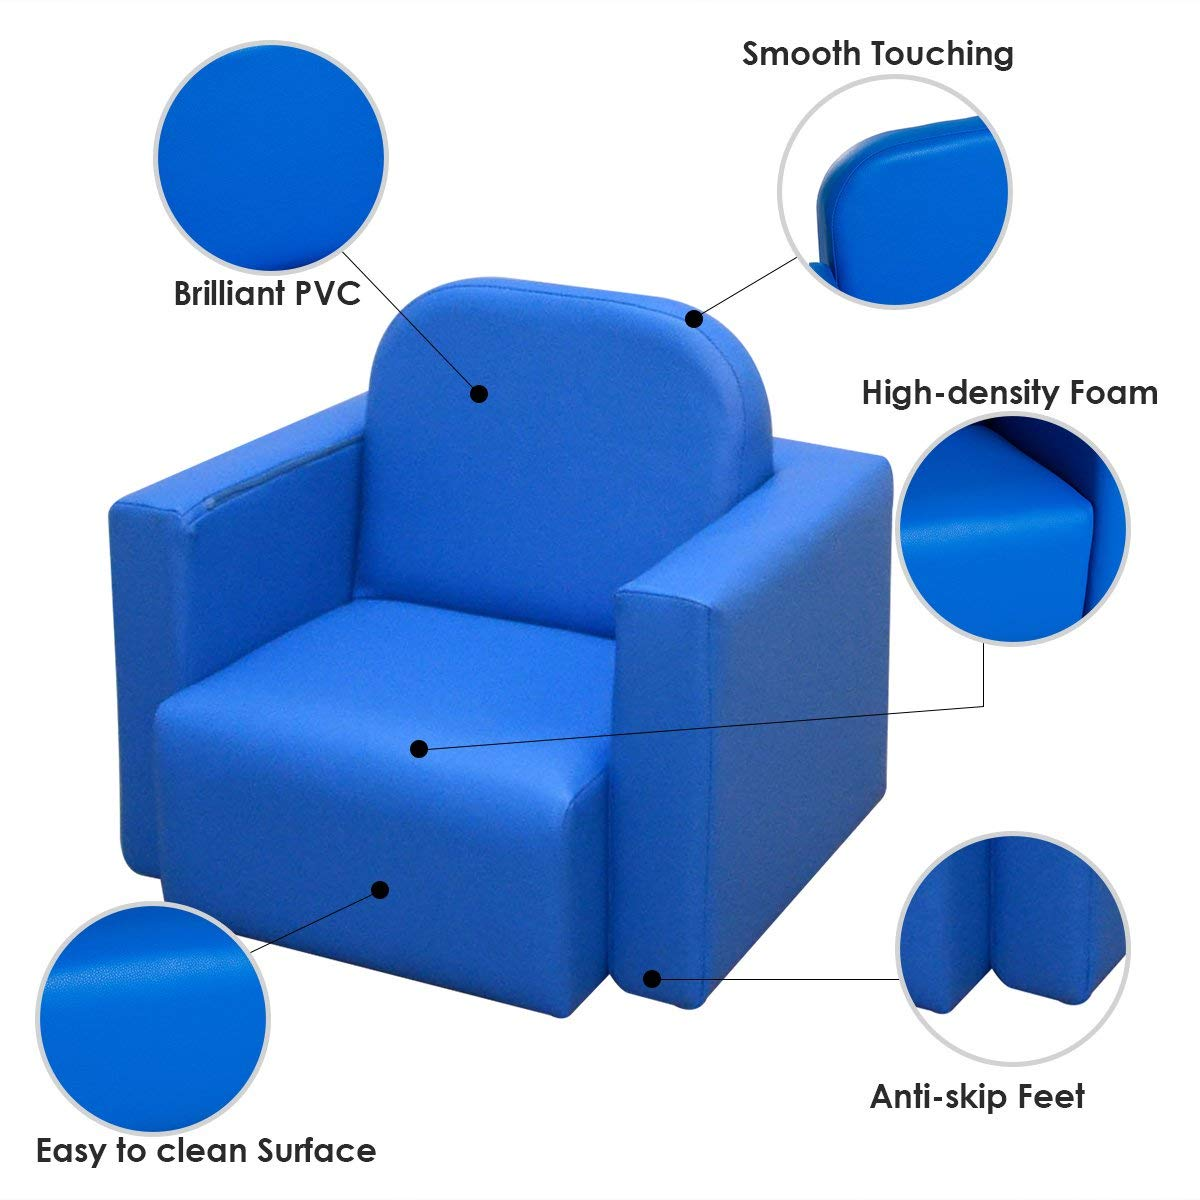 Festnight 2-in-1 Kids Table and Chair Set PVC Multifunctional Convertible Children Sofa